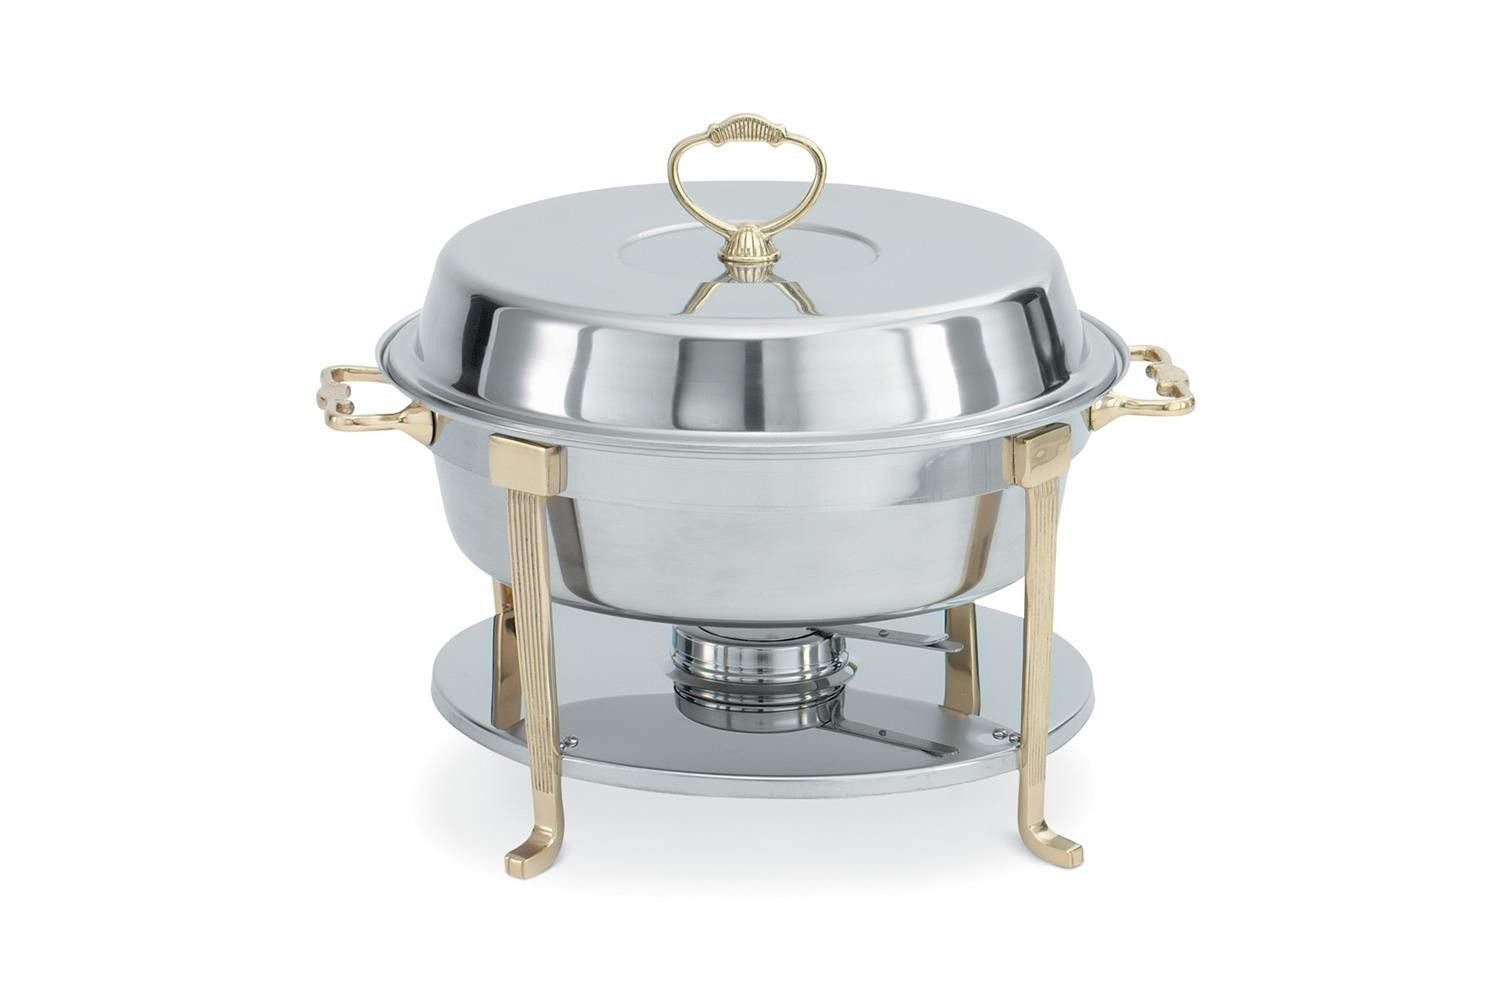 Vollrath 46030 Classic Round Chafer with Brass Trim 5,8 Qt.